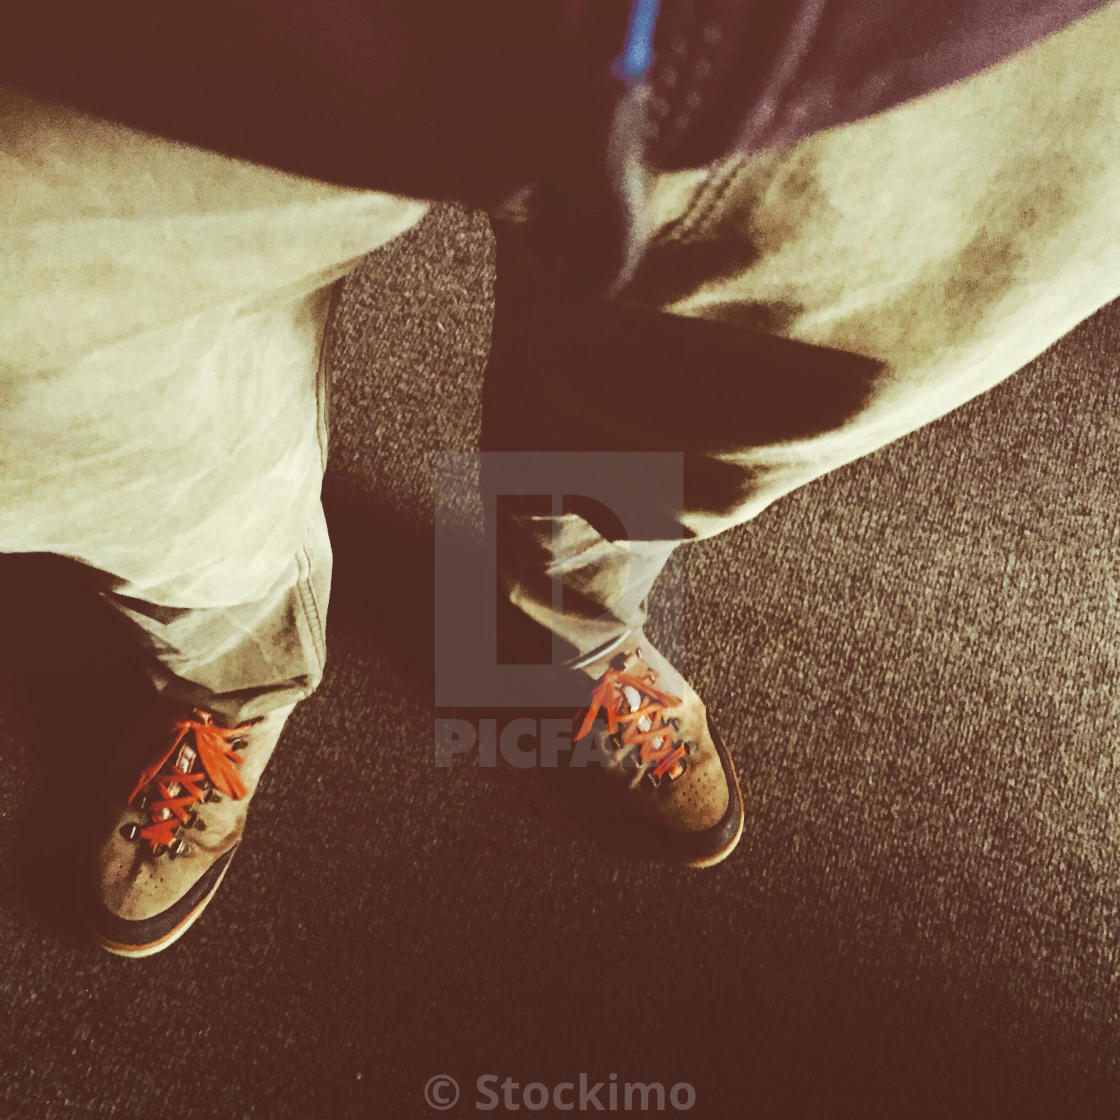 """A man standing and waiting"" stock image"